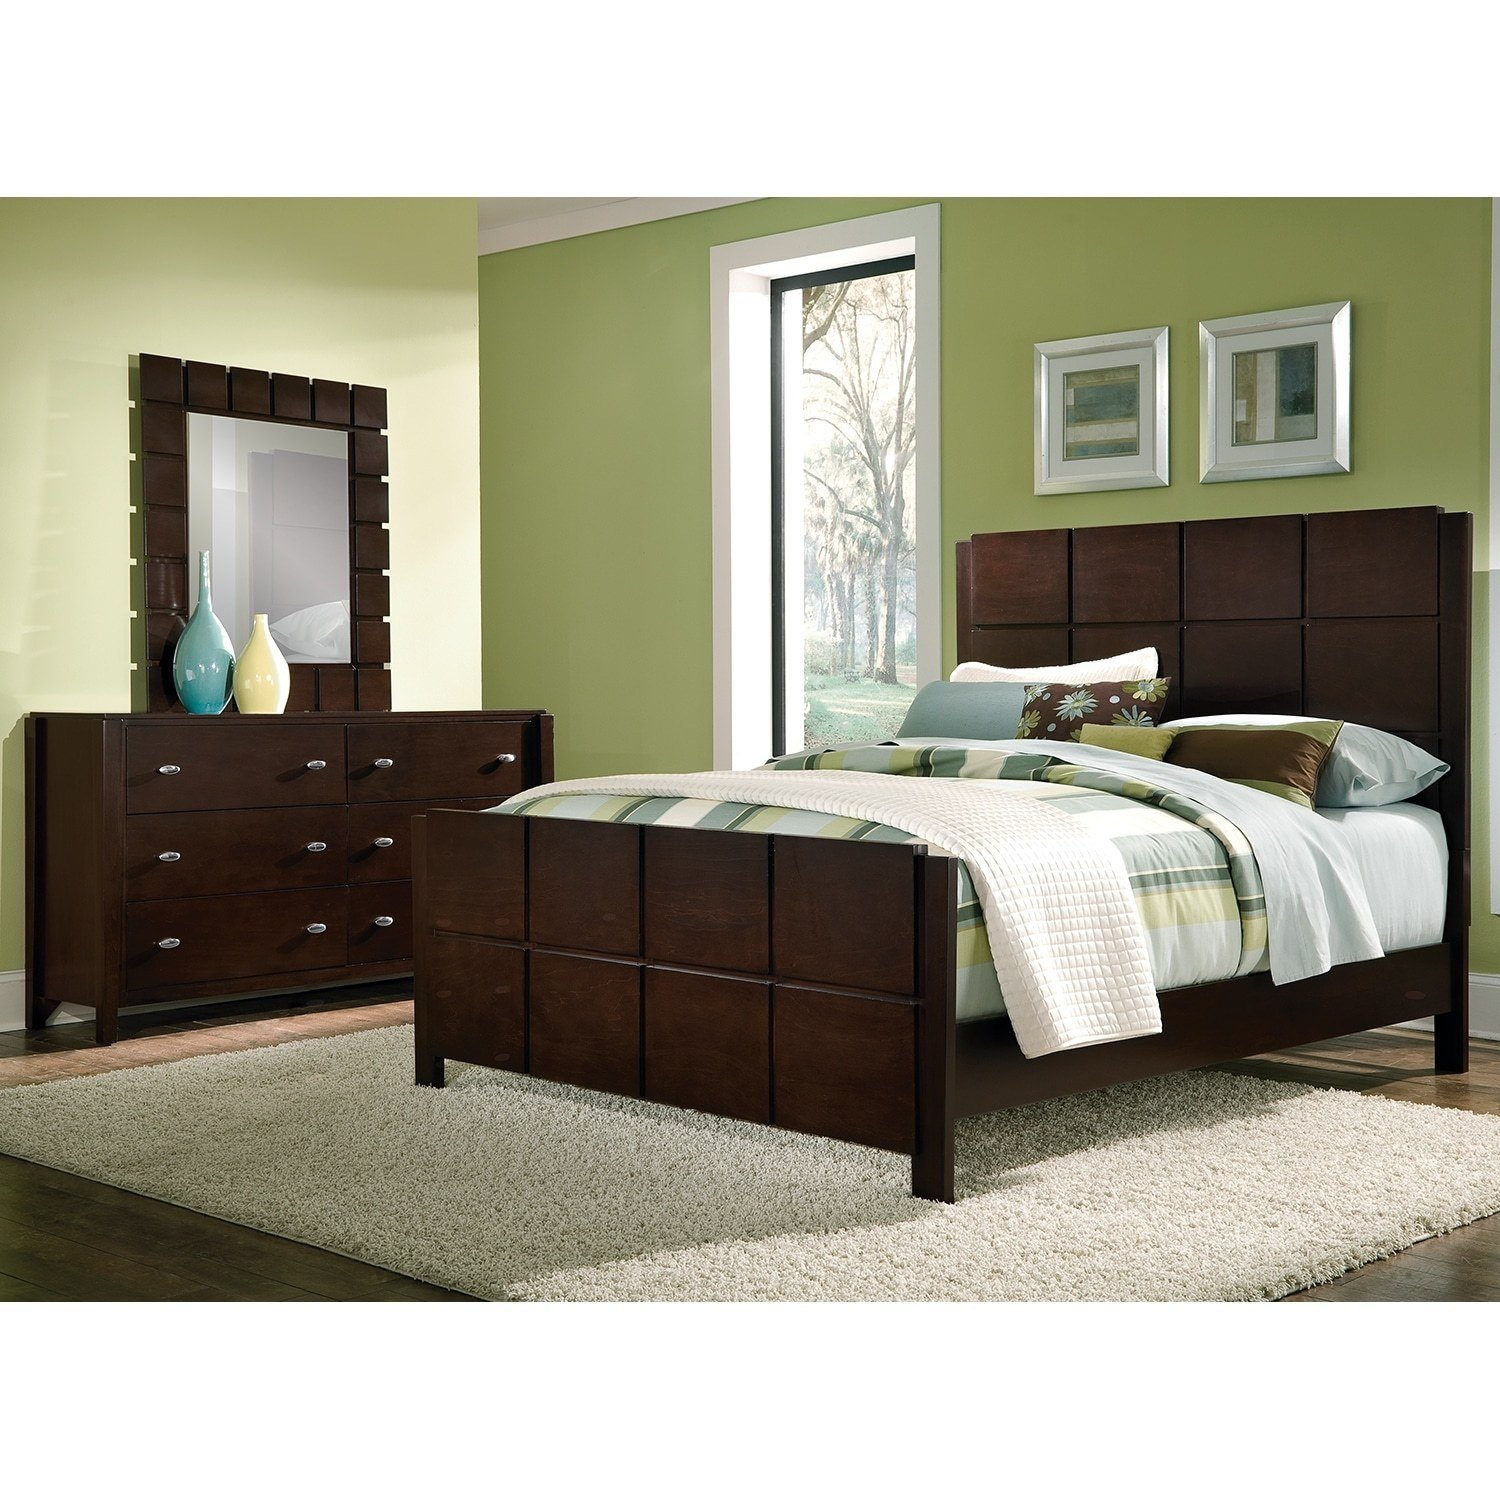 Best Shop All Furniture Value City Furniture With Pictures